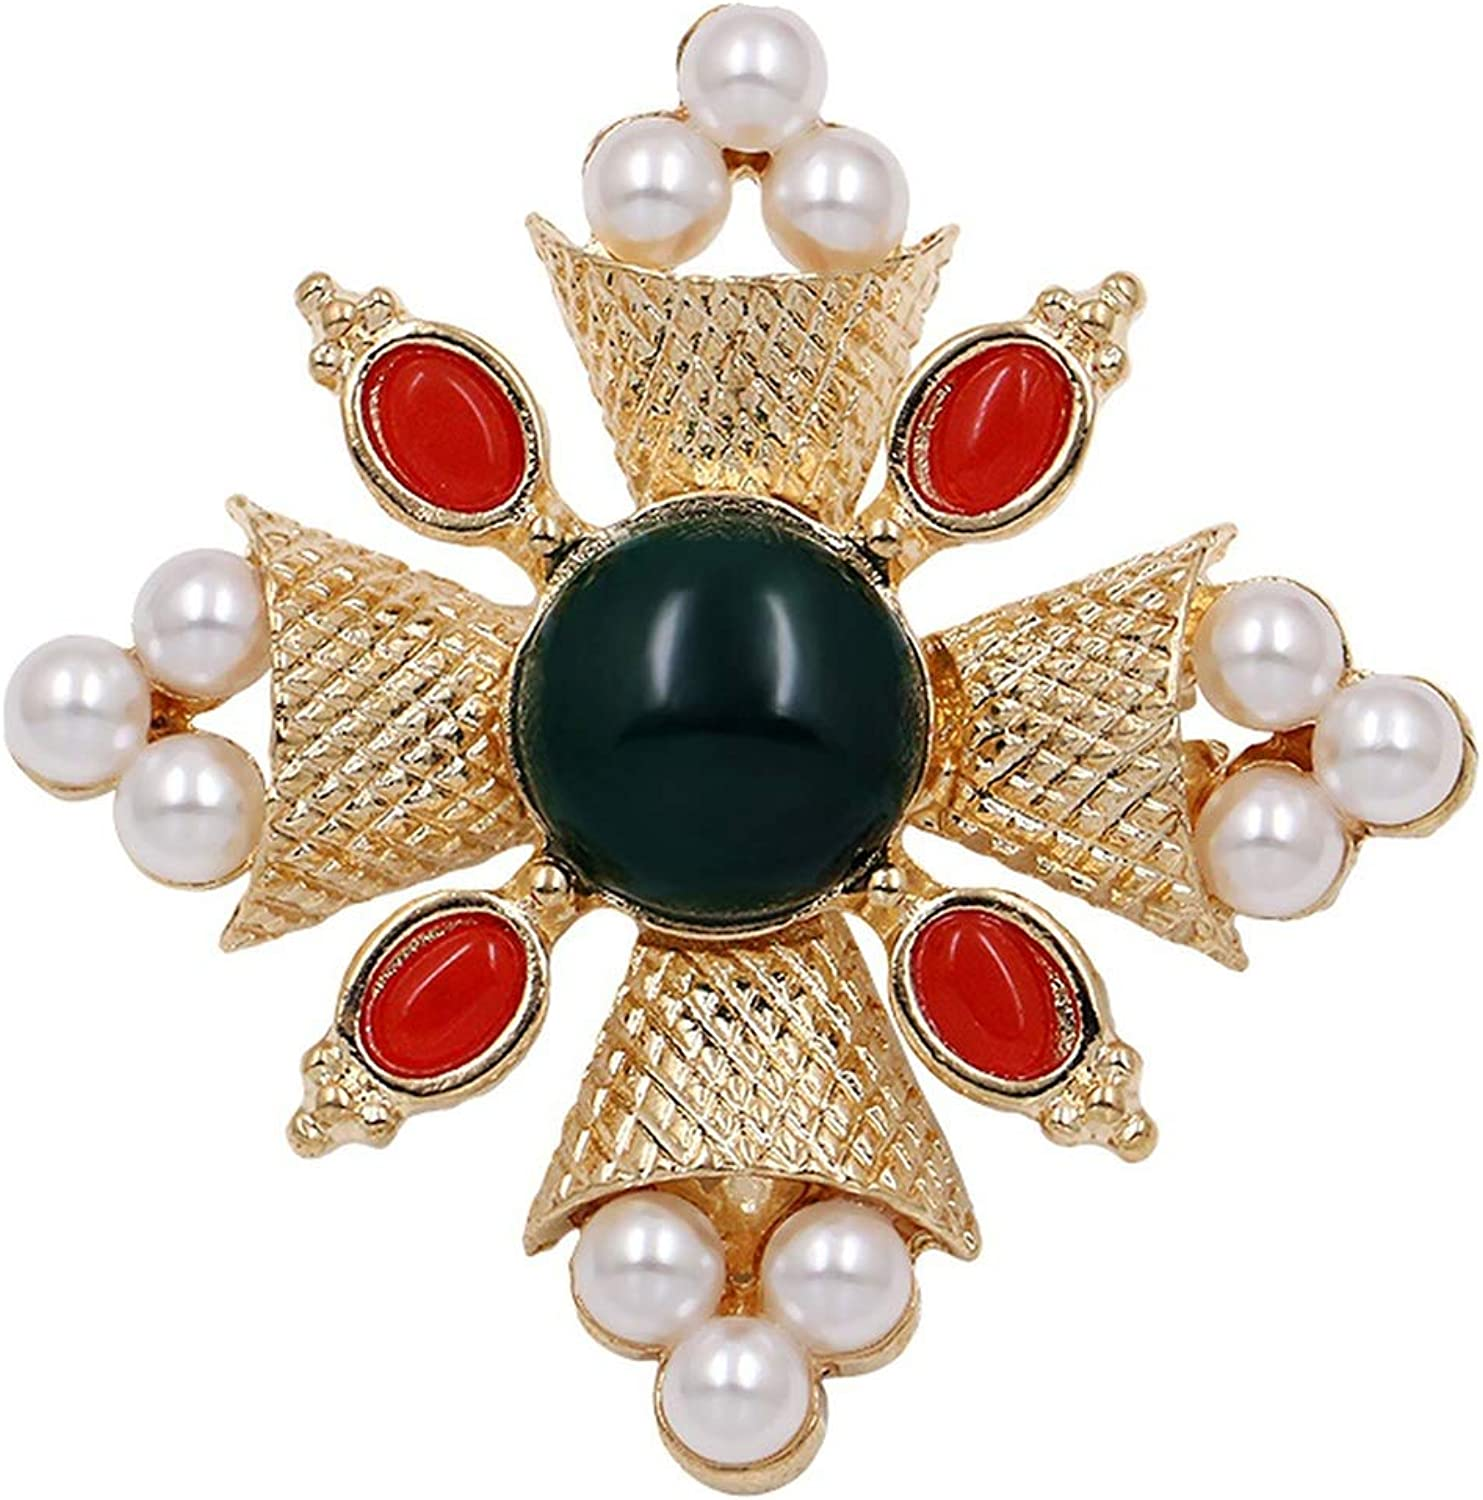 myeuphoria Brooch Pins-Vintage Style Red and Green Simulated Pearl Cross Brooches Gold Color Plated